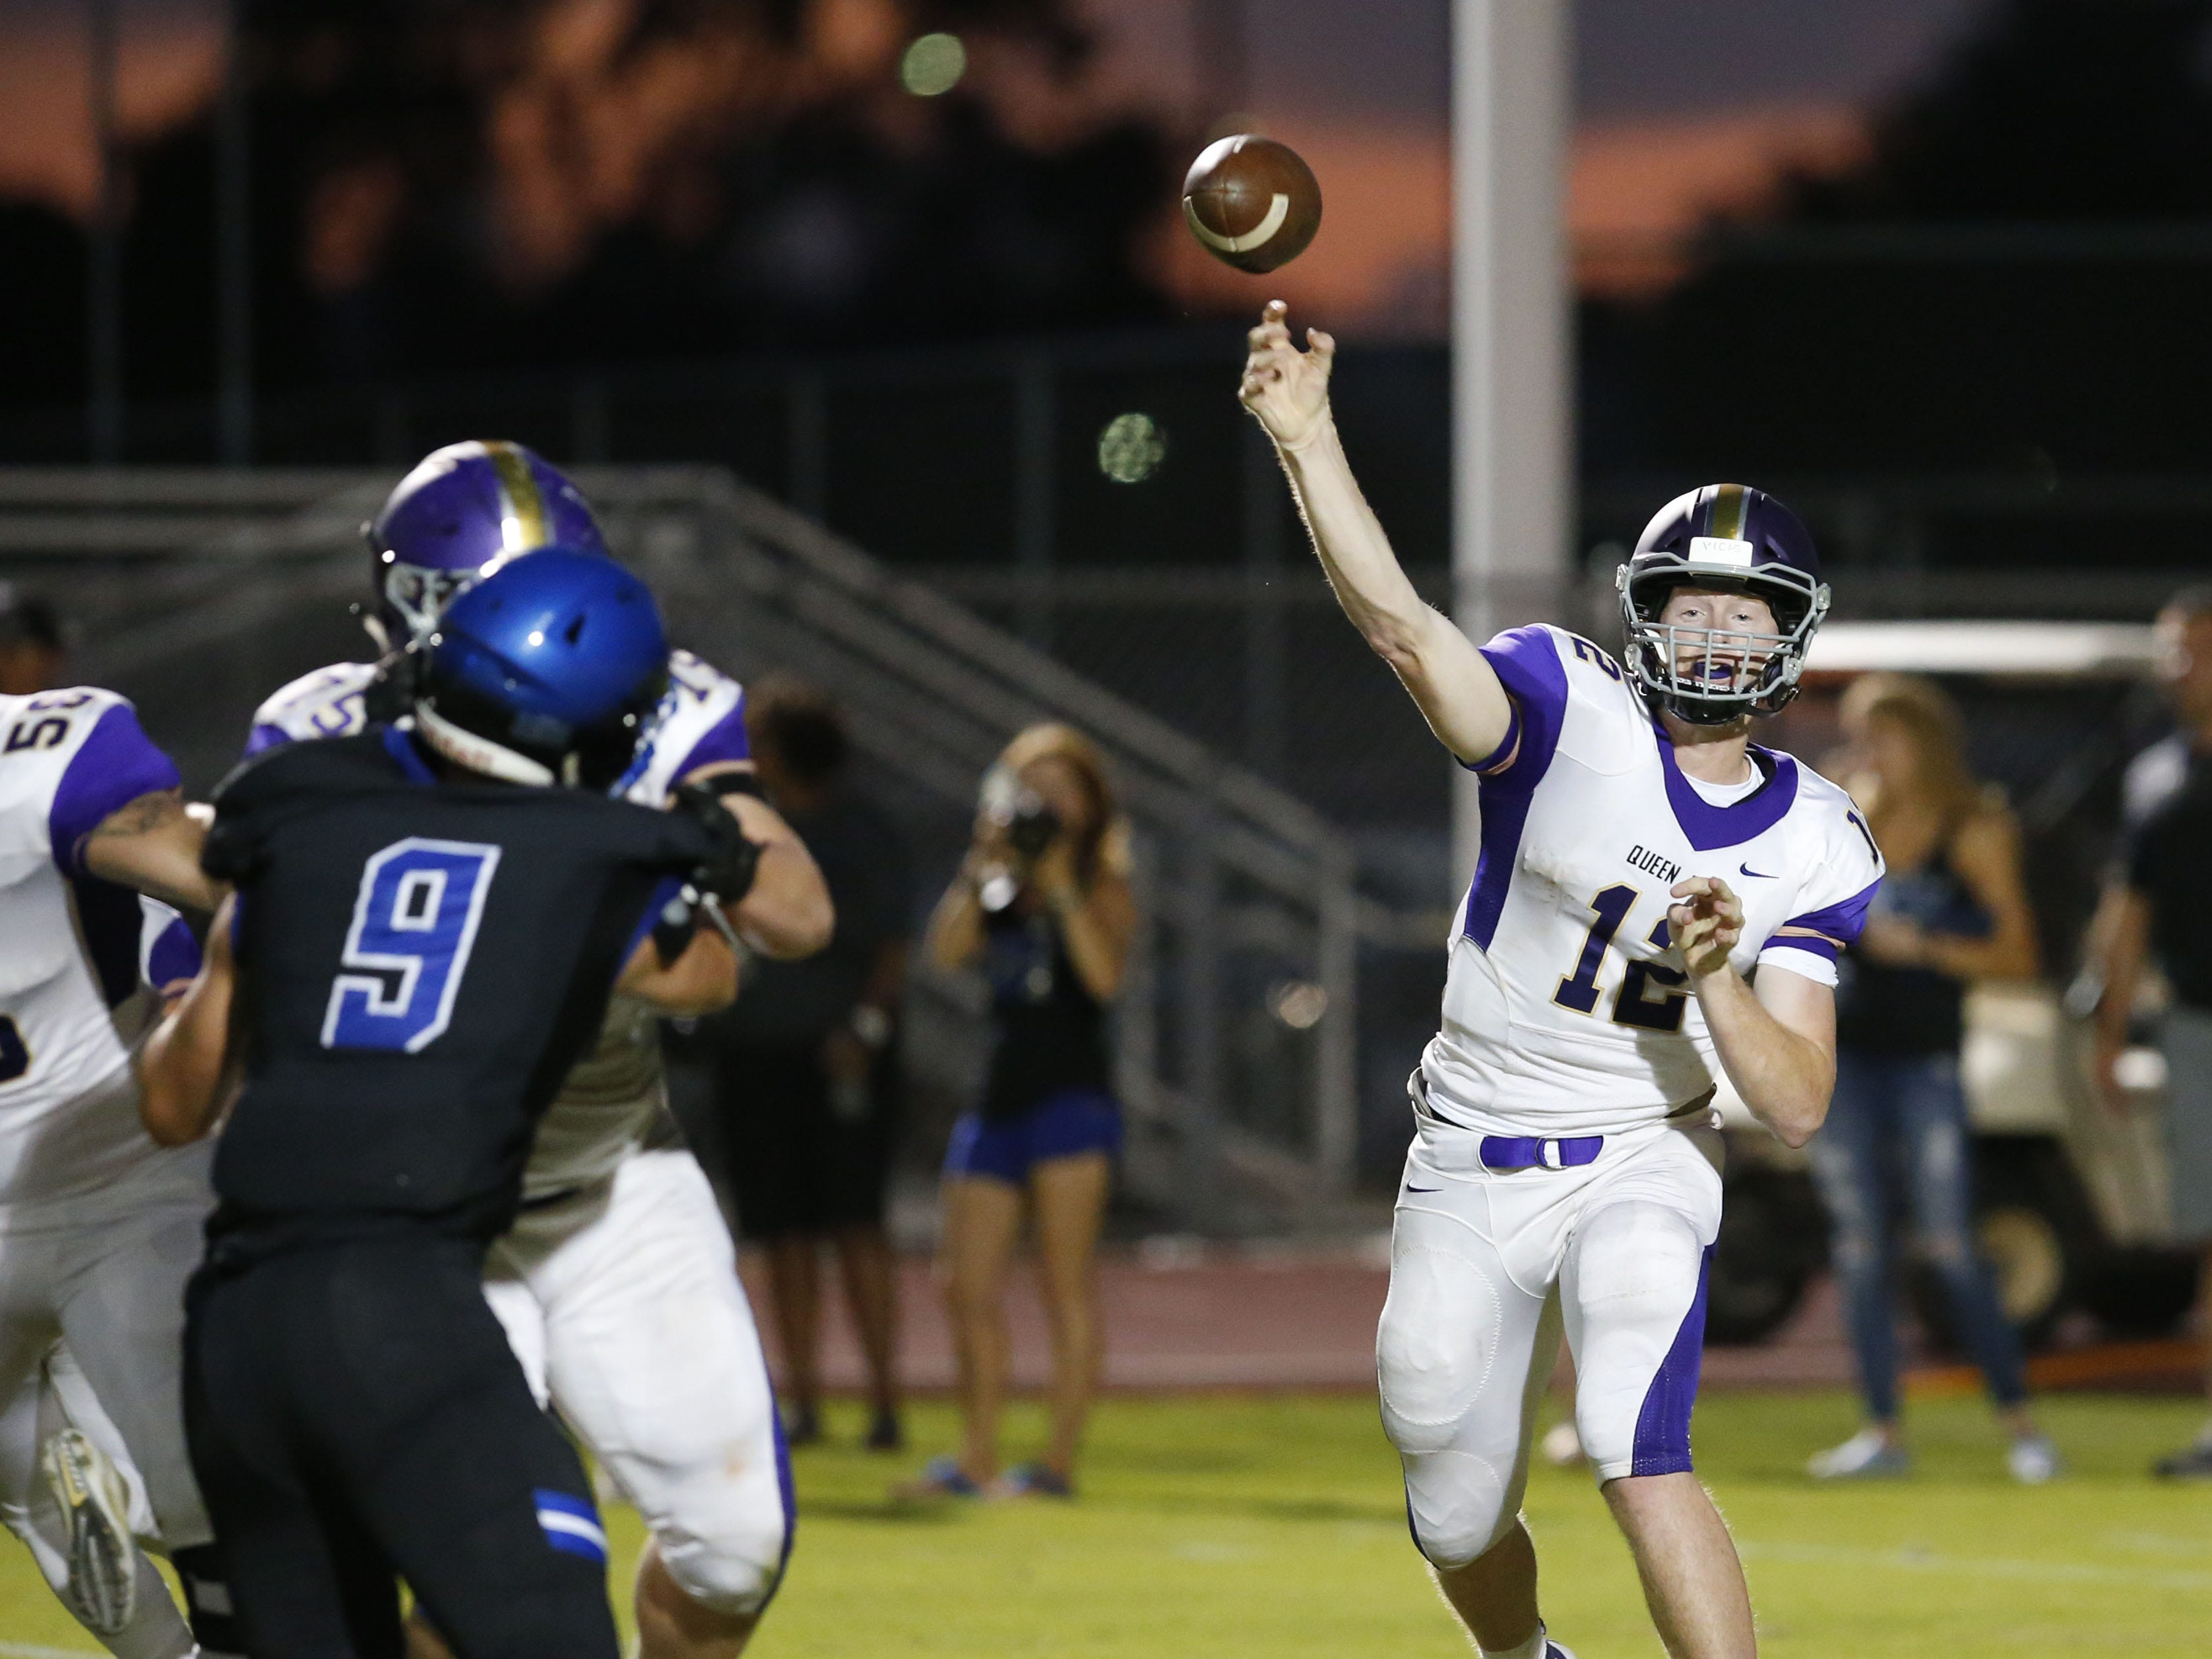 Queen Creek Devin Larsen (12) passes the ball during a high school football game against Chandler at Chandler High on August 24, 2018. #azhsfb